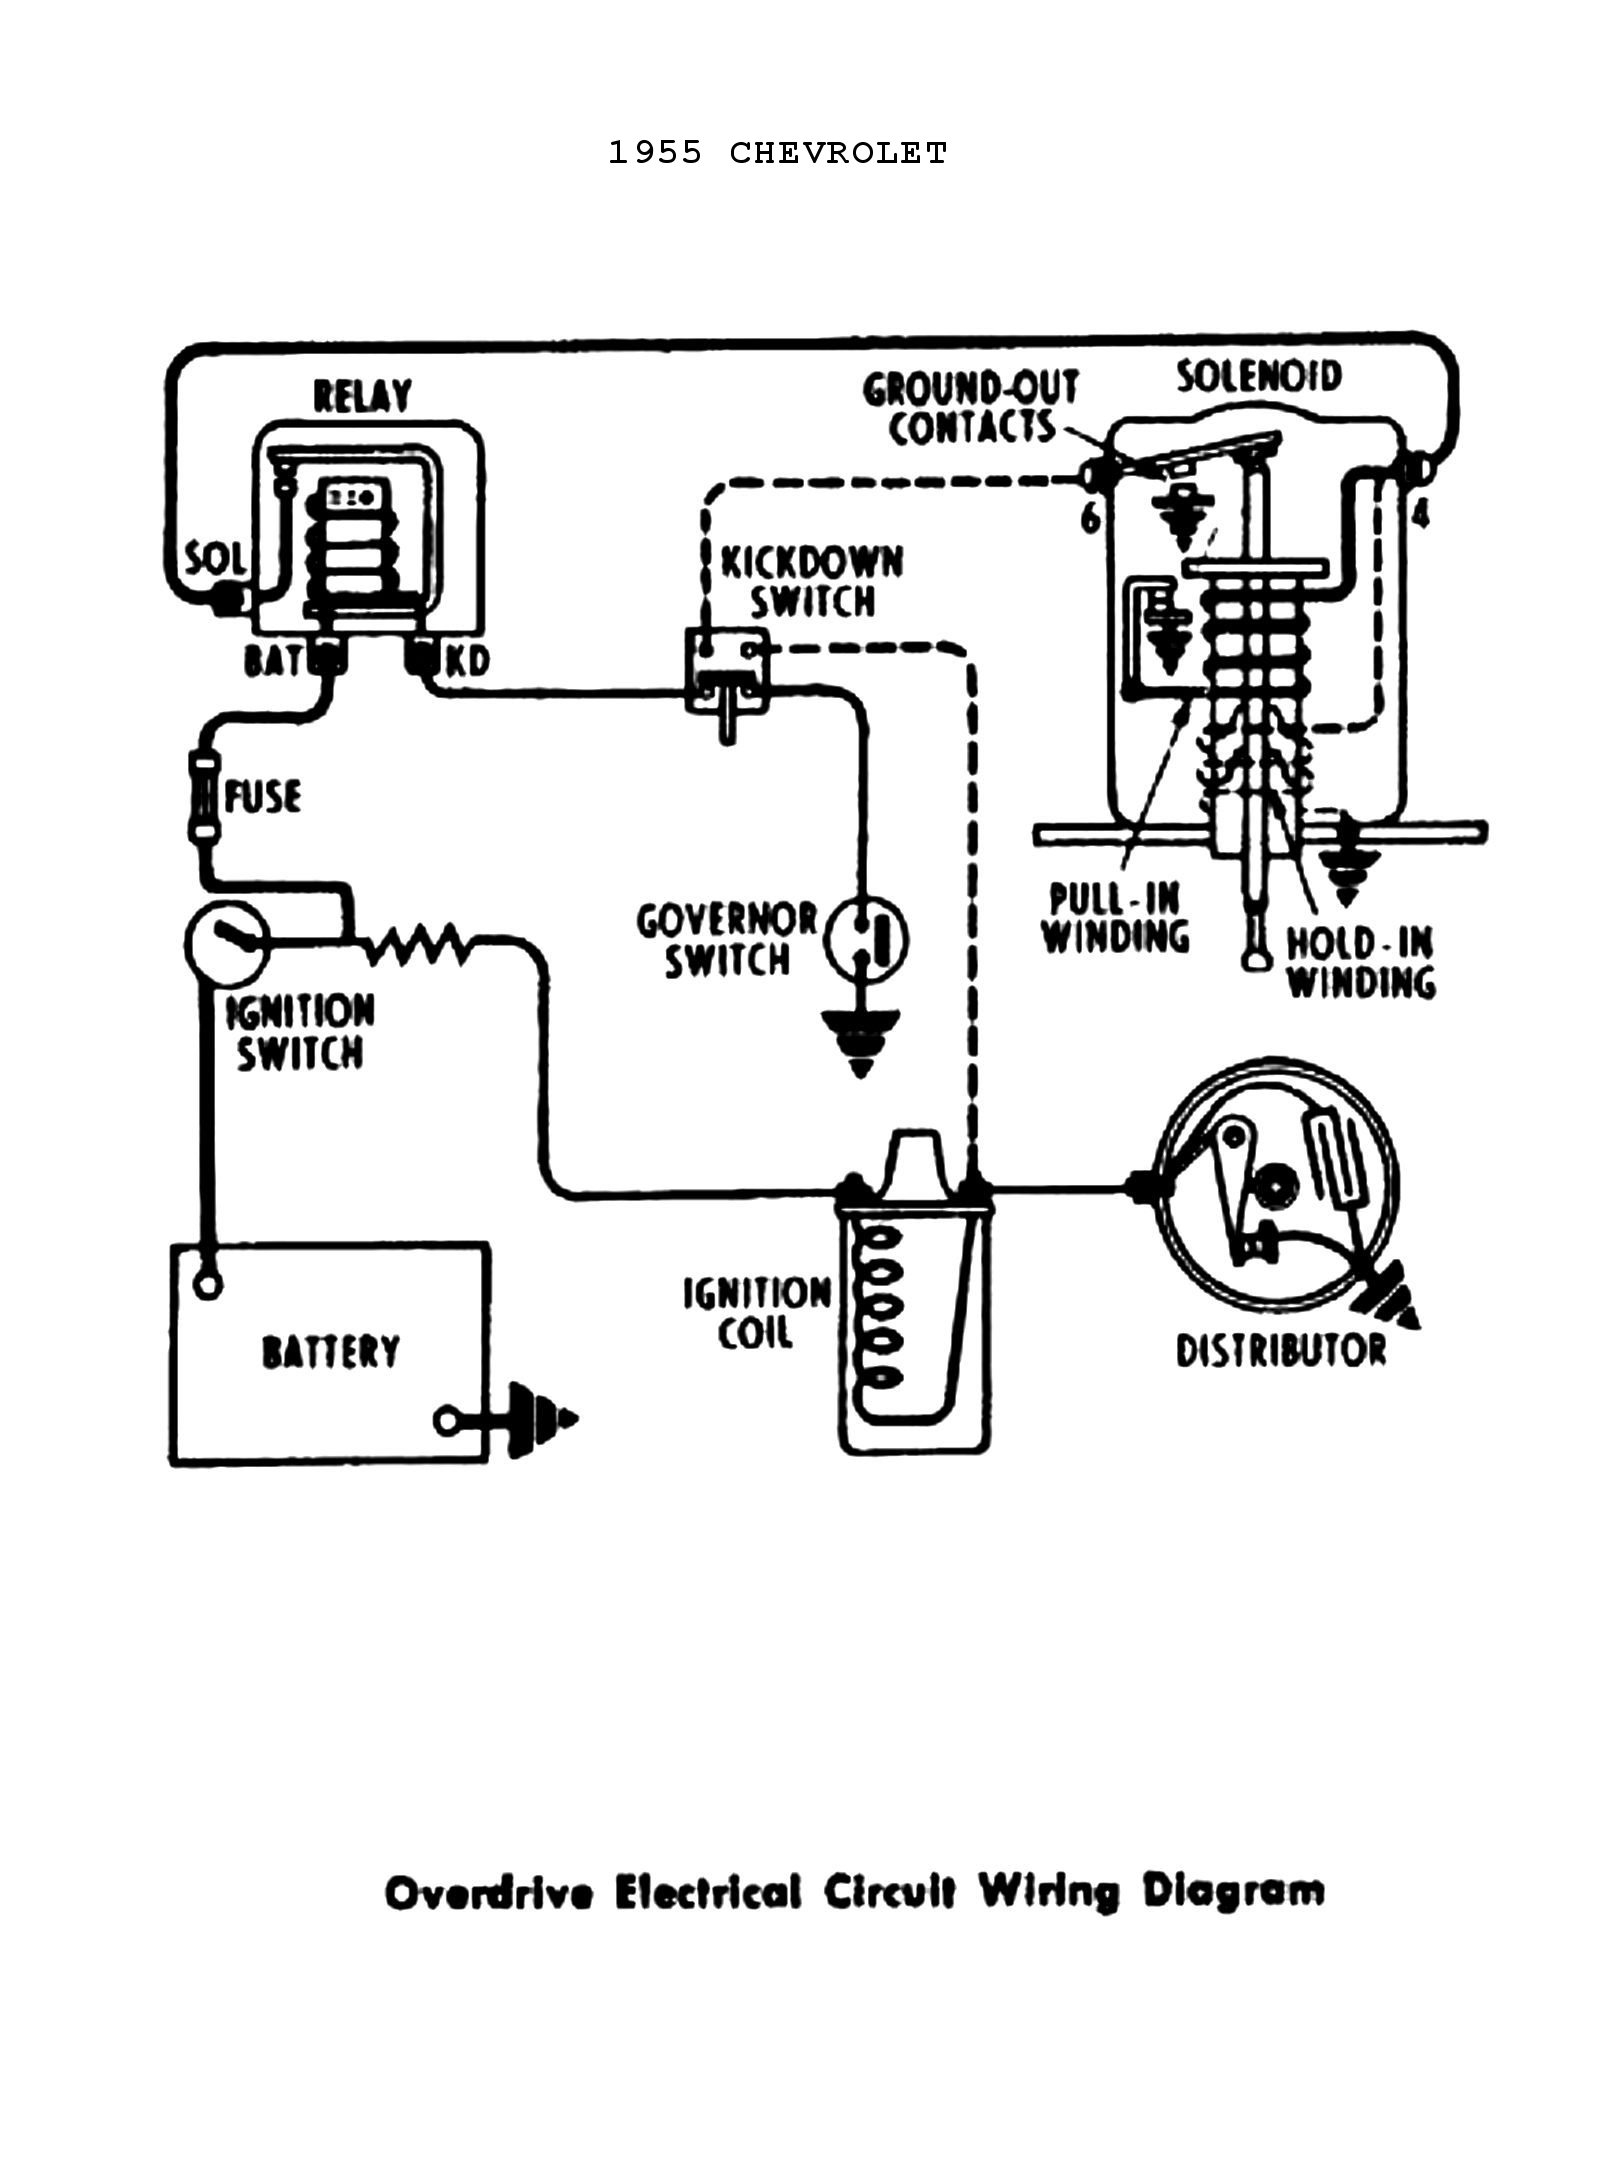 hight resolution of chevy colorado wiring diagram 1955 power windows seats 1955 overdrive circuit 19m